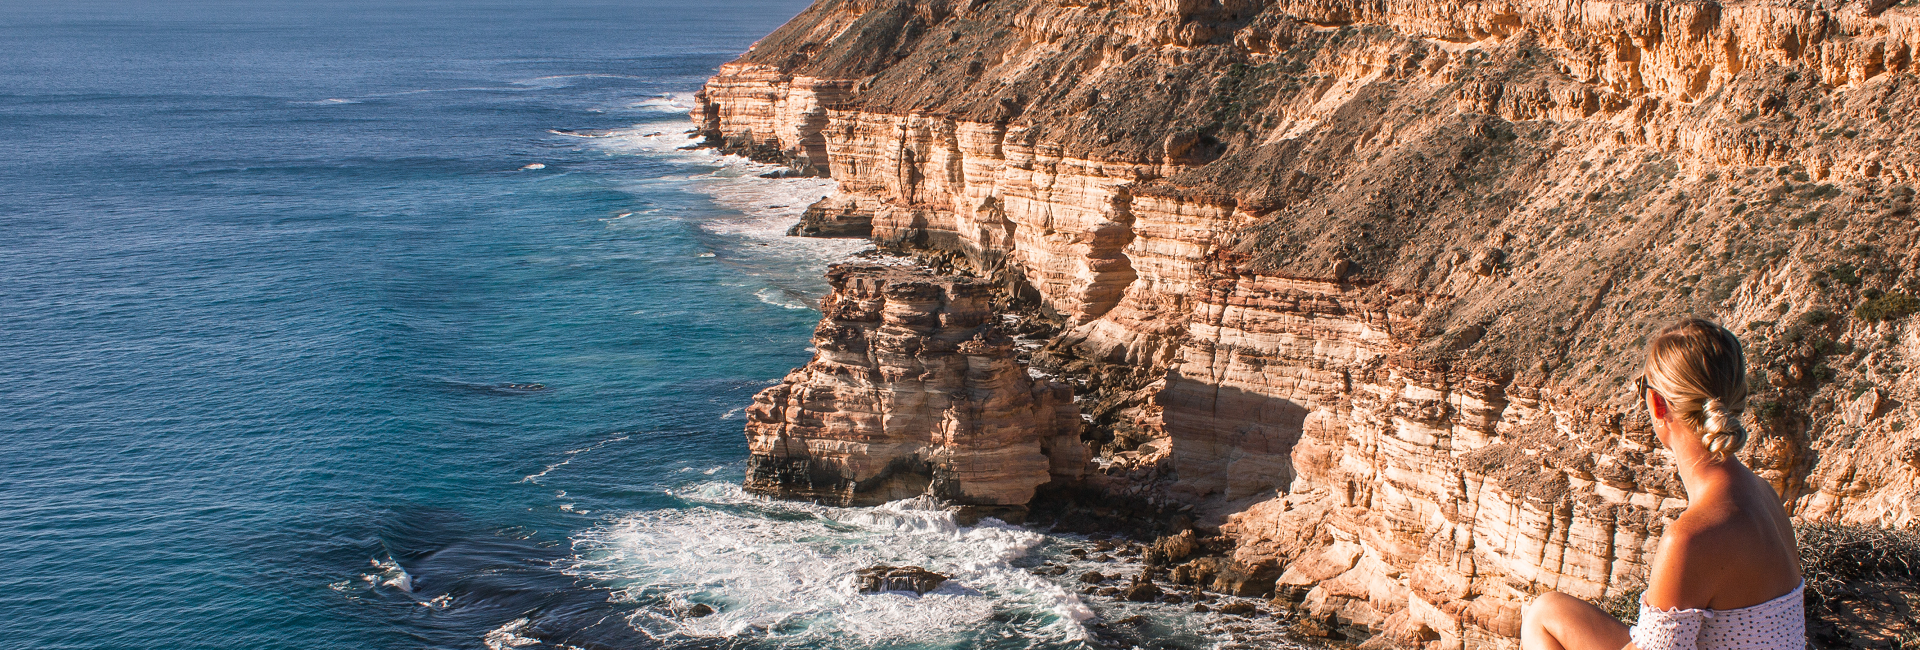 A traveller soaks up the view of Kalbarri's Coastal Cliffs, Kalbarri, Western Australia